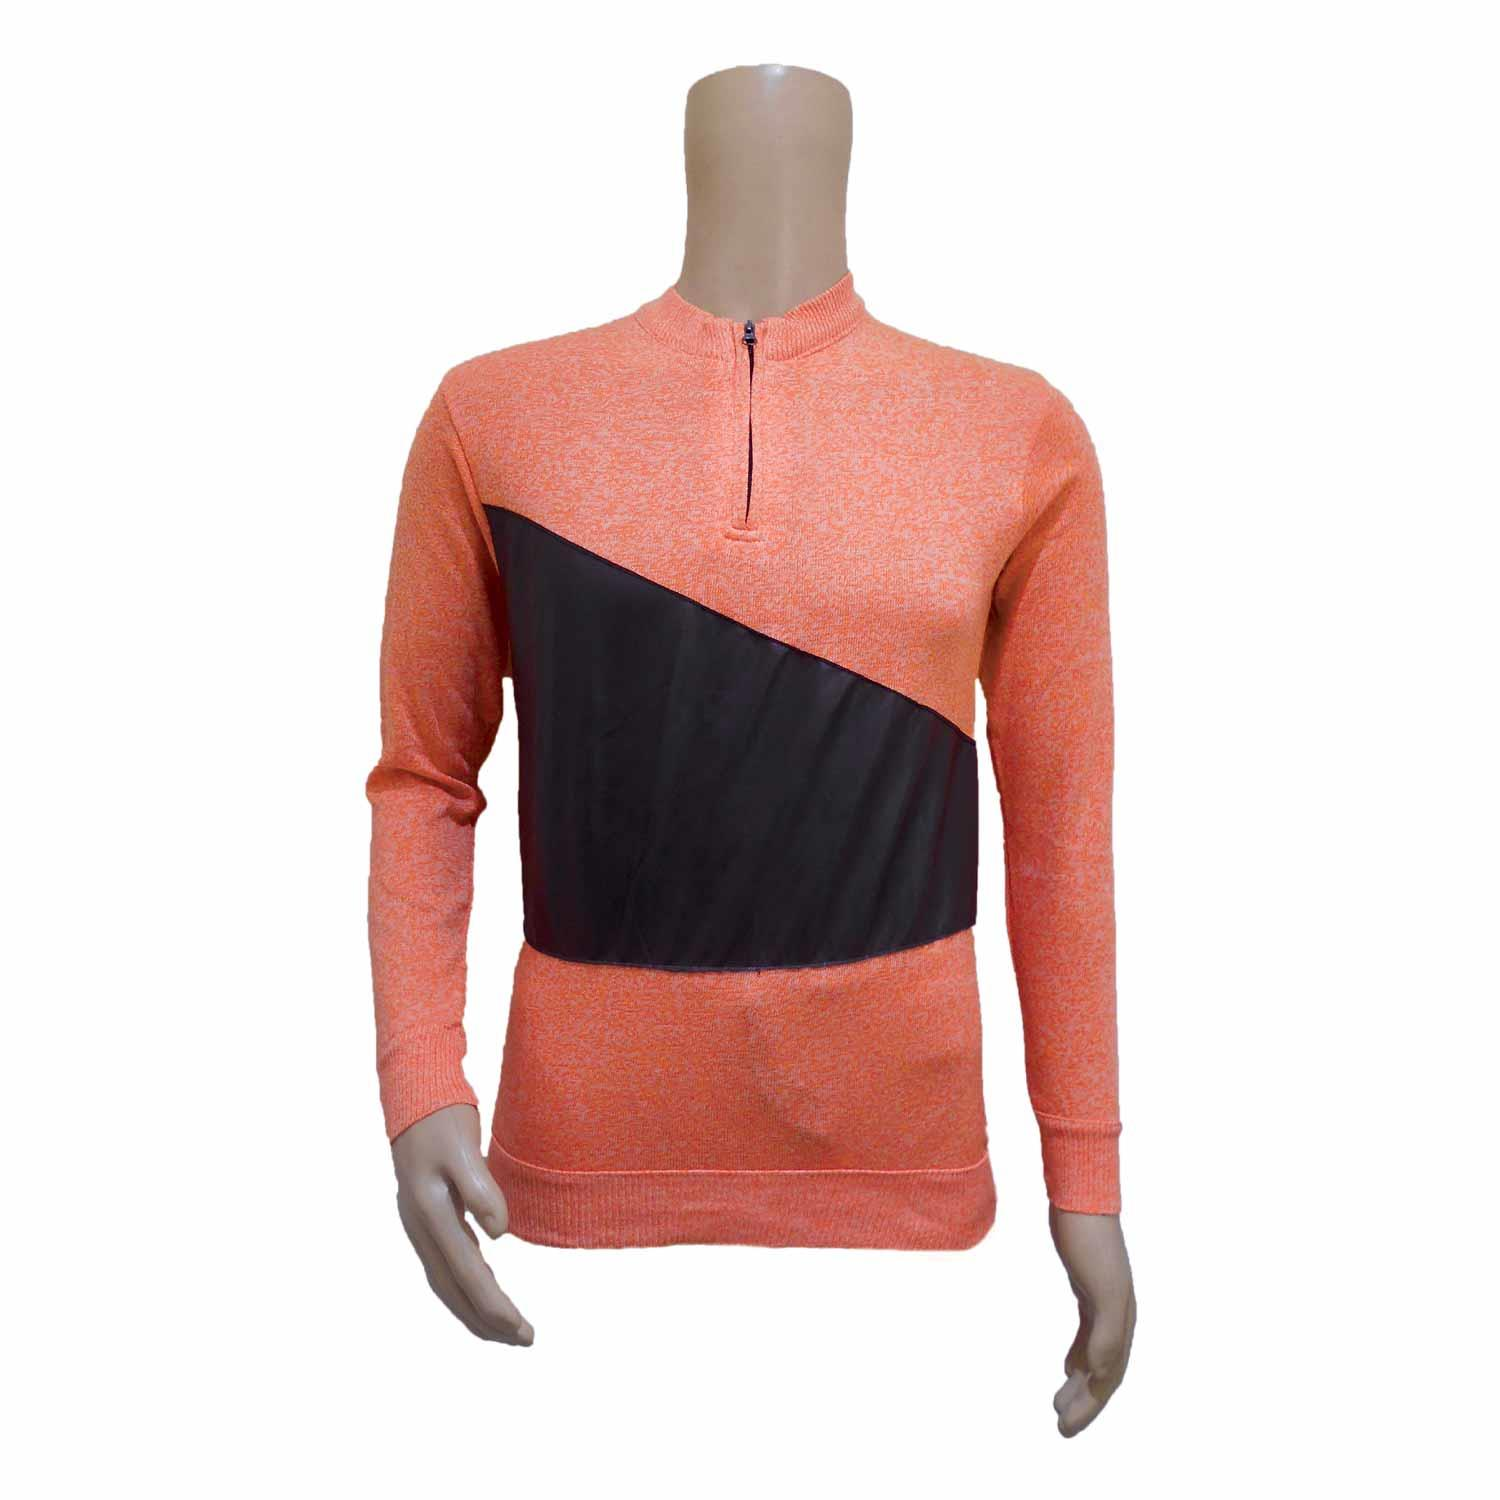 MEN'S SWEATER STAR KNIGHT ORANGE